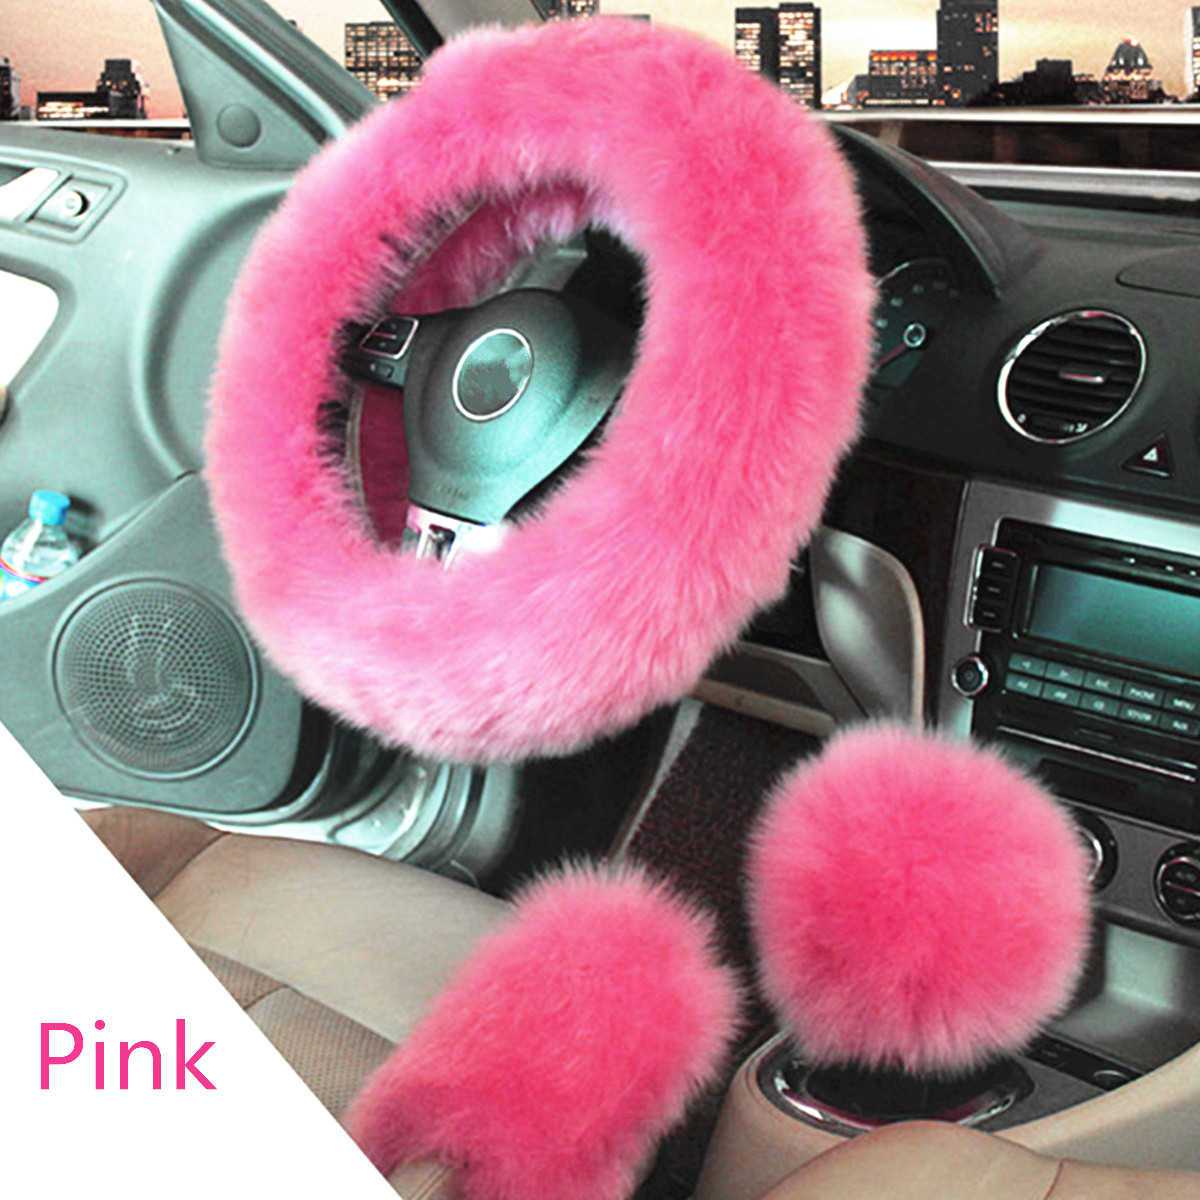 3PCS Plush Wool Car Steering Wheel Non-slip Protector + Gear Knob Shifter Parking Brake Cover Set Christmas Gift Car Decor Fashion Accessories 14.2""